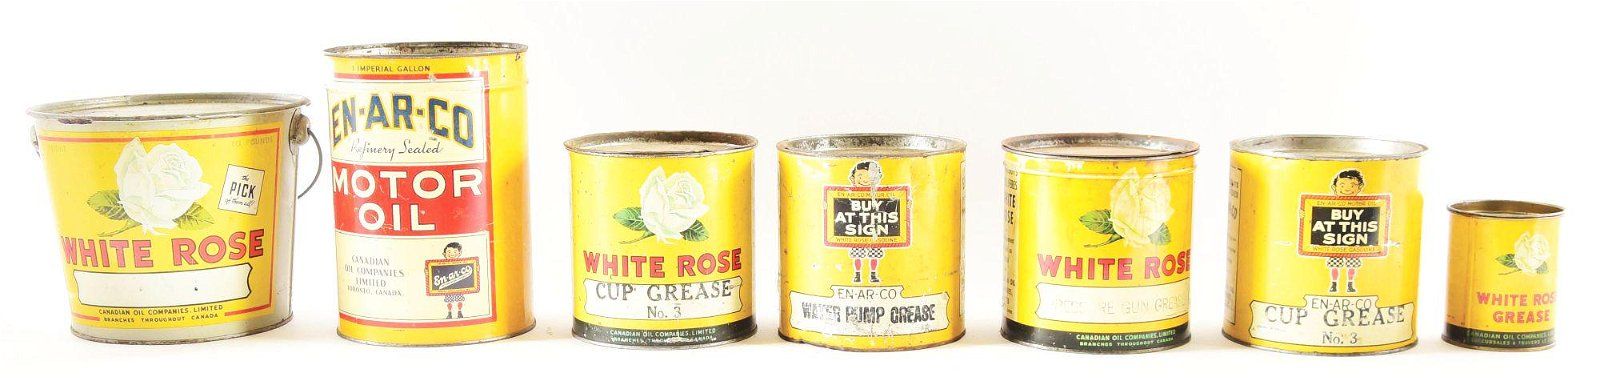 Lot Of 7: Enarco & White Rose Motor Oil & Grease Cans.